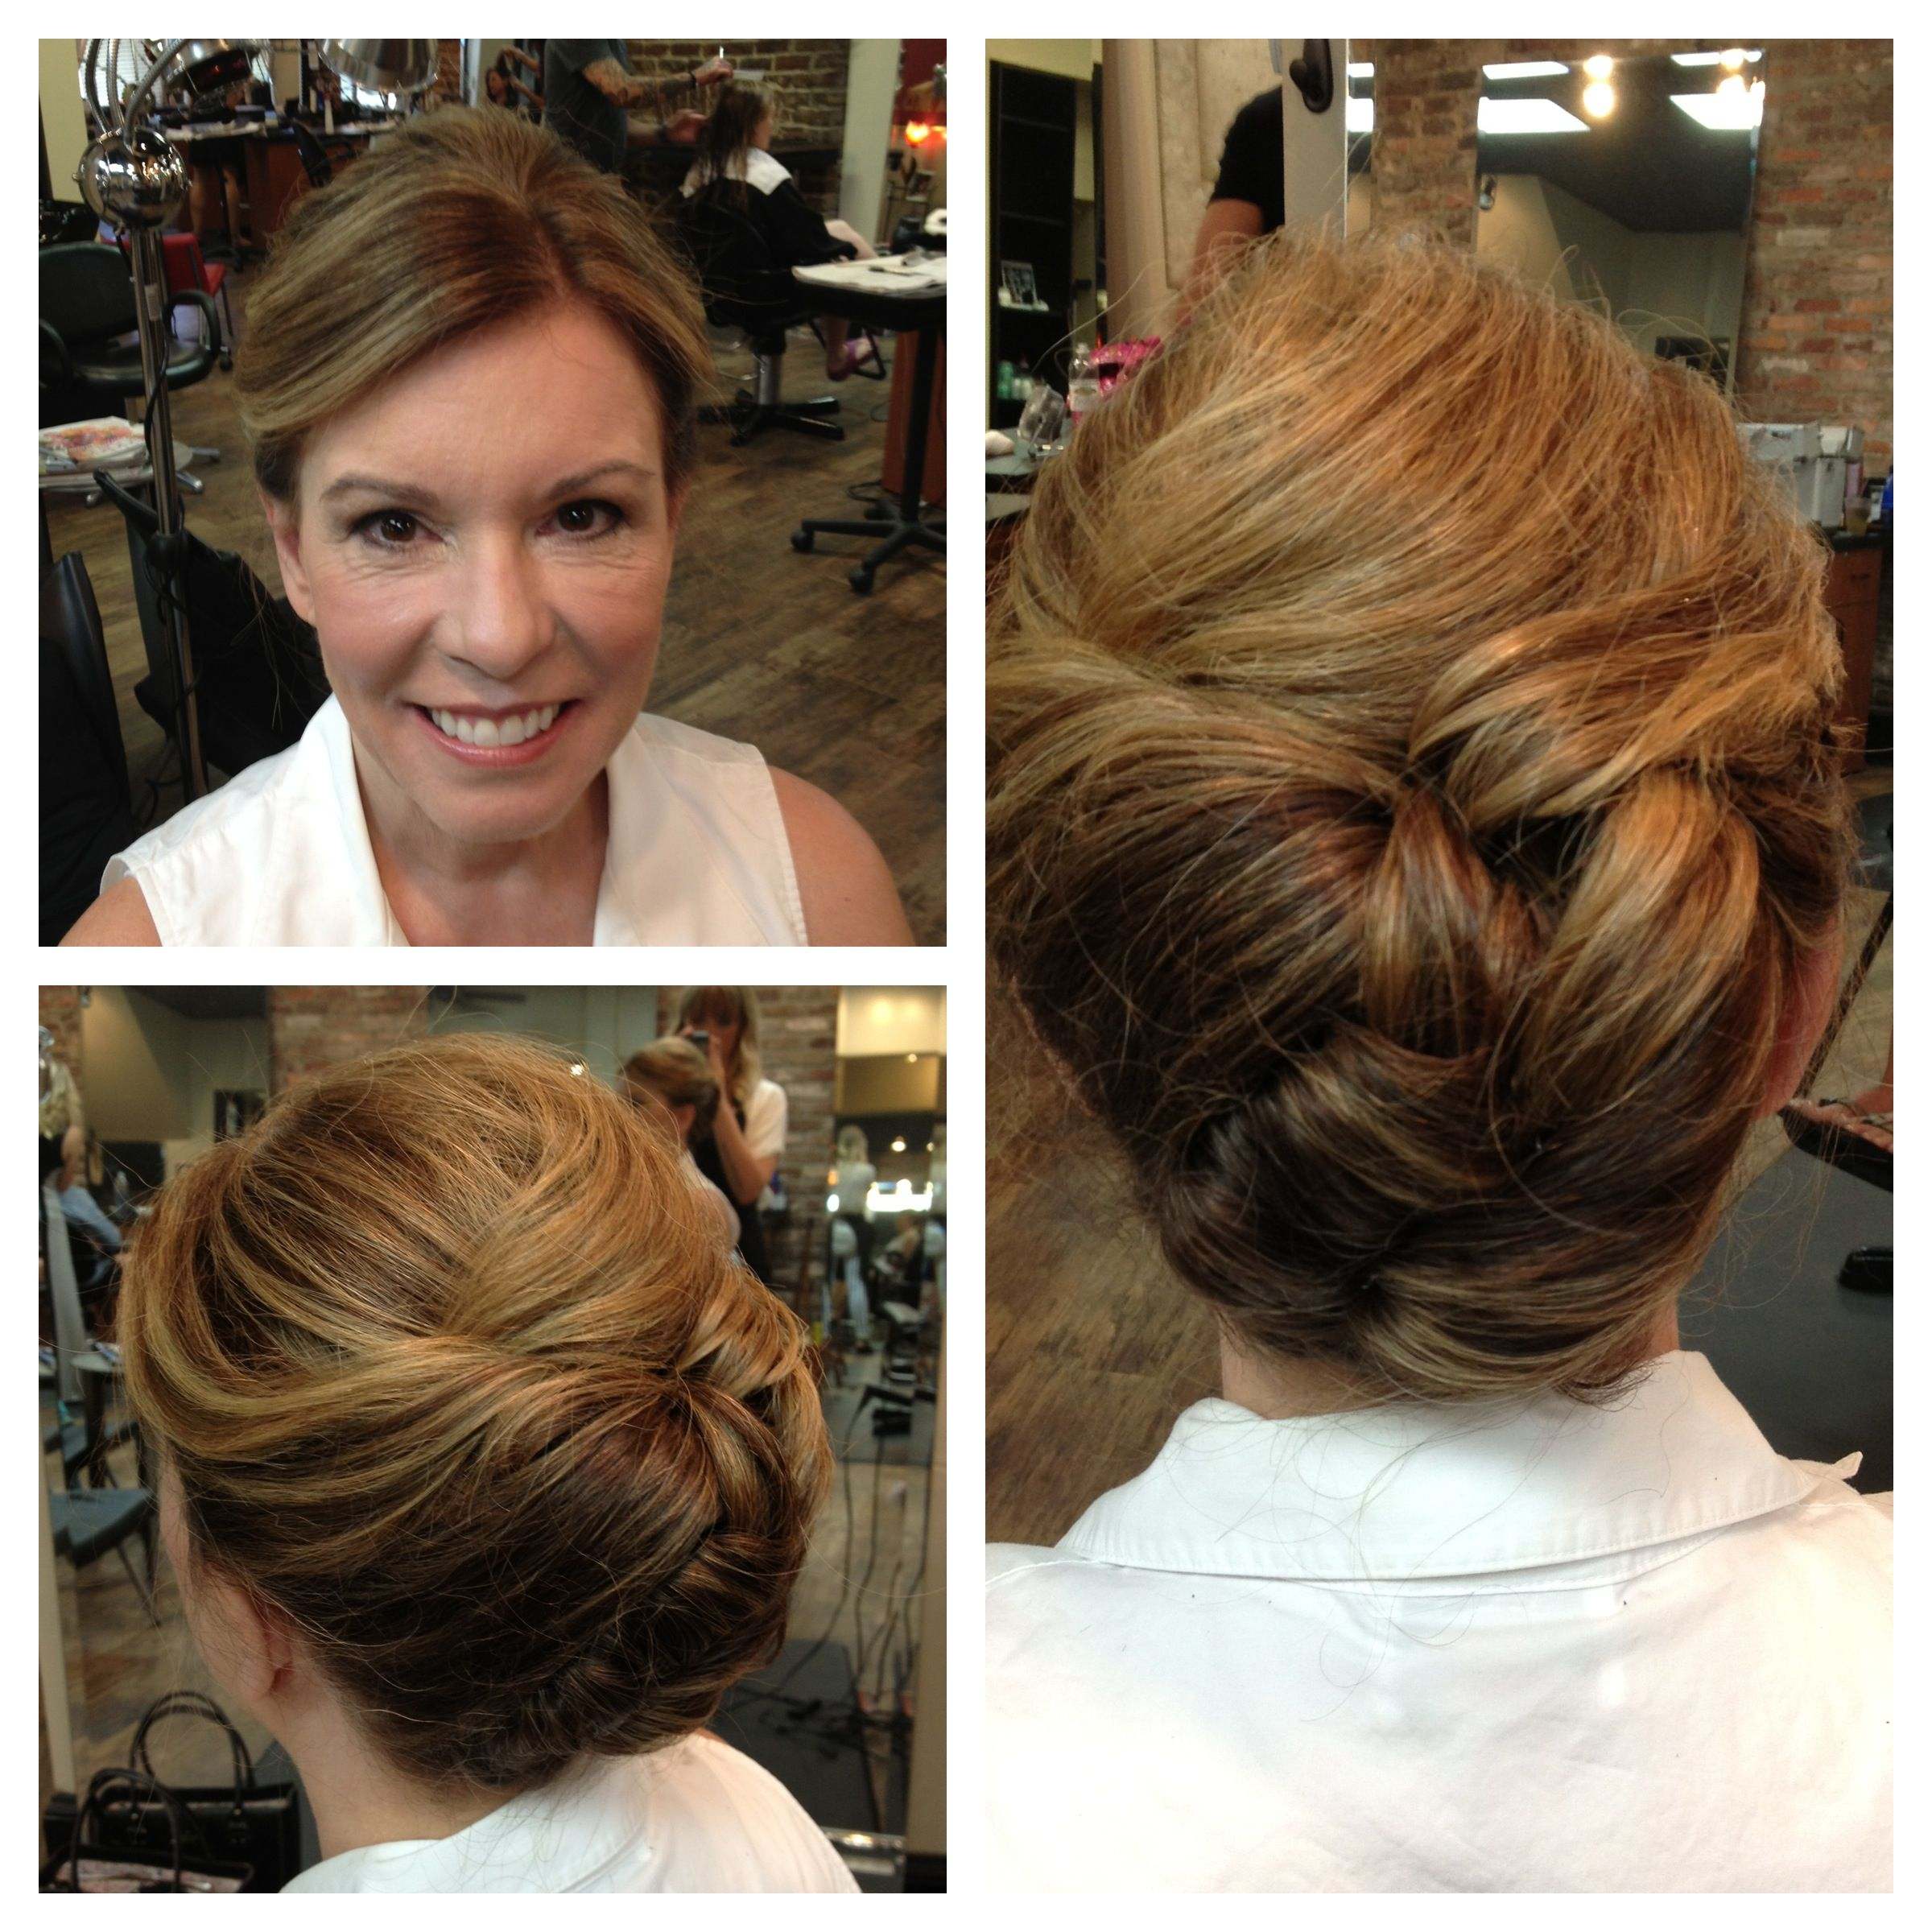 Wedding Hairstyles For Mom: Updo, Mother Of The Bride, Wedding Hair. This Was A Great